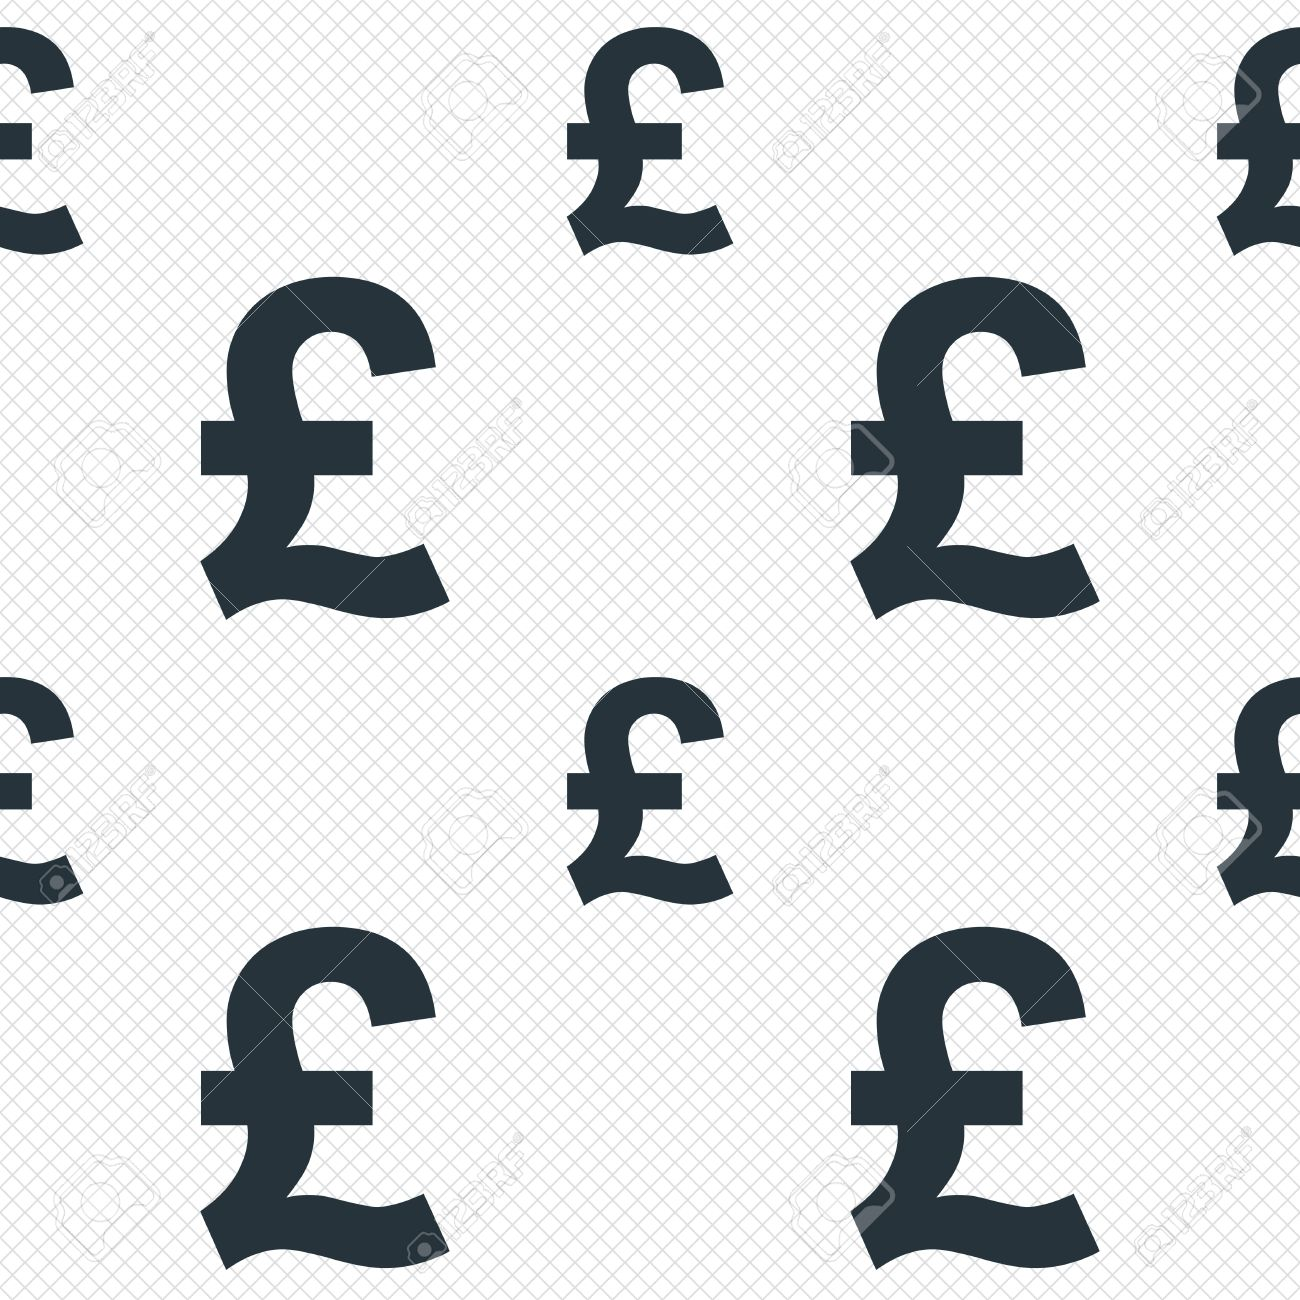 Pound sign icon gbp currency symbol money label seamless grid pound sign icon gbp currency symbol money label seamless grid lines texture buycottarizona Choice Image